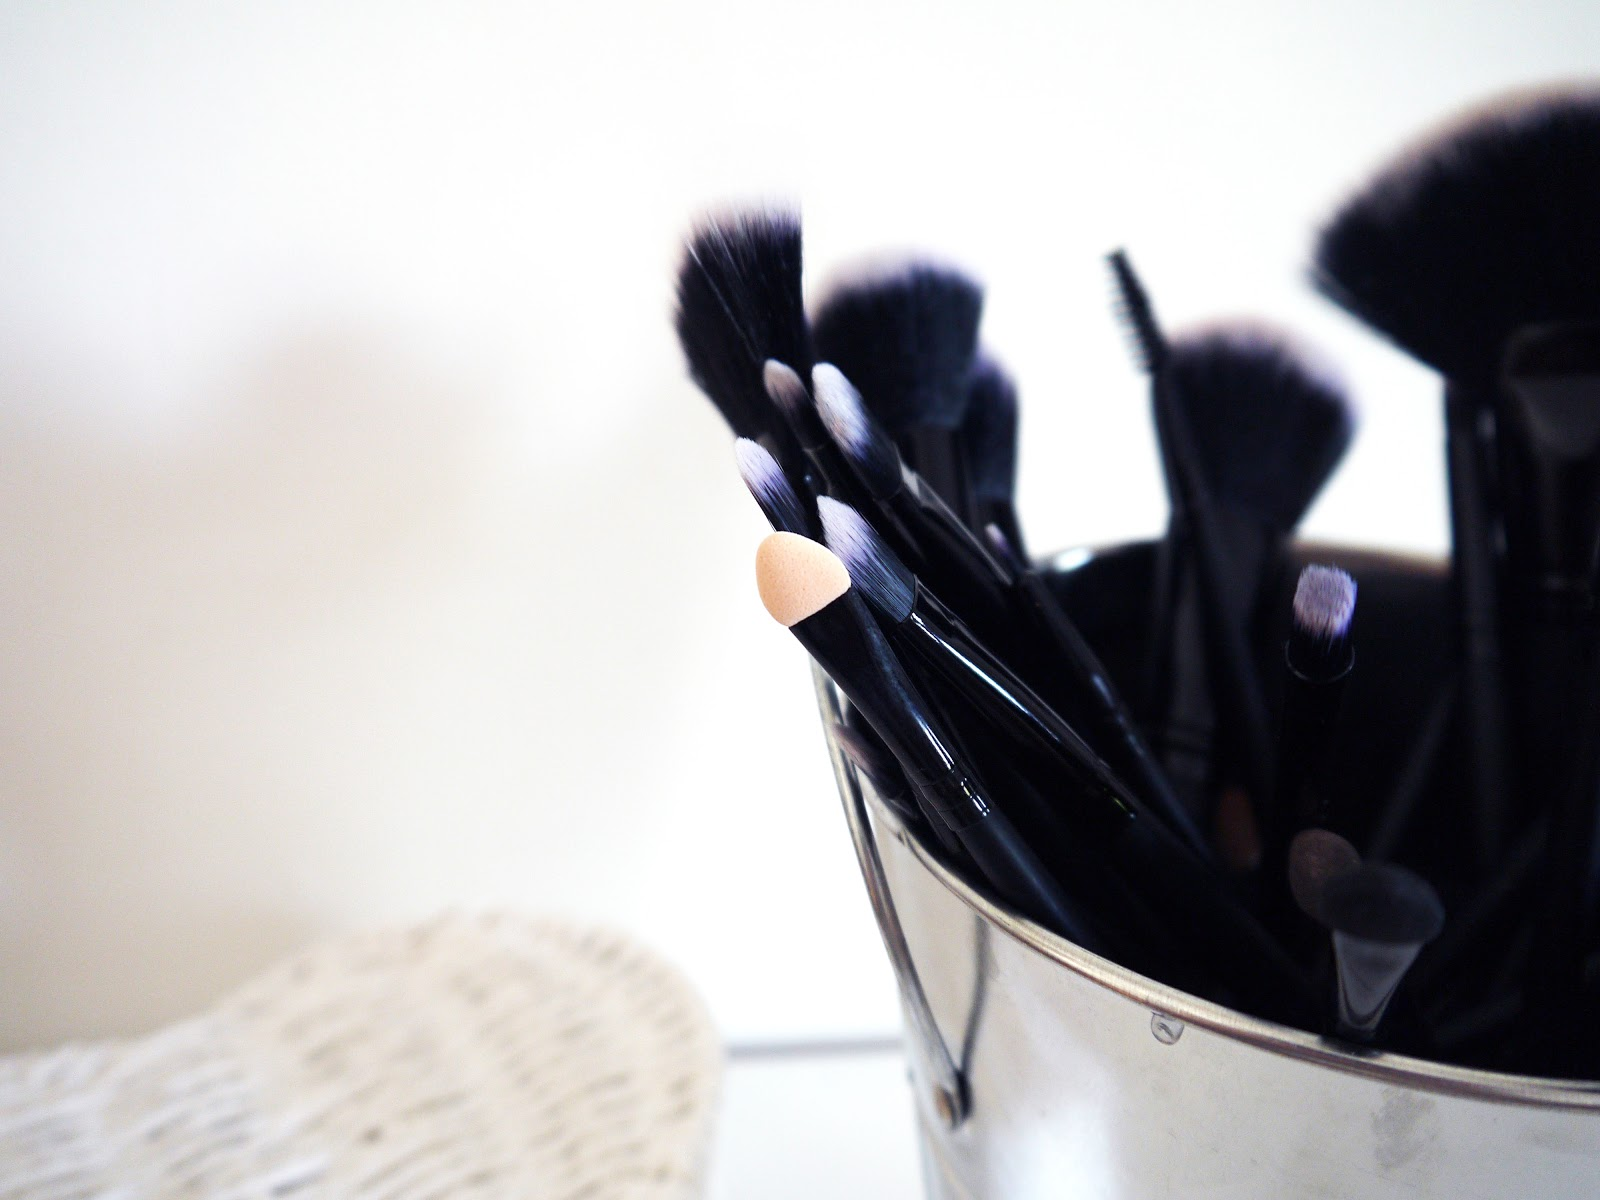 Uspicy make up brushes review 1